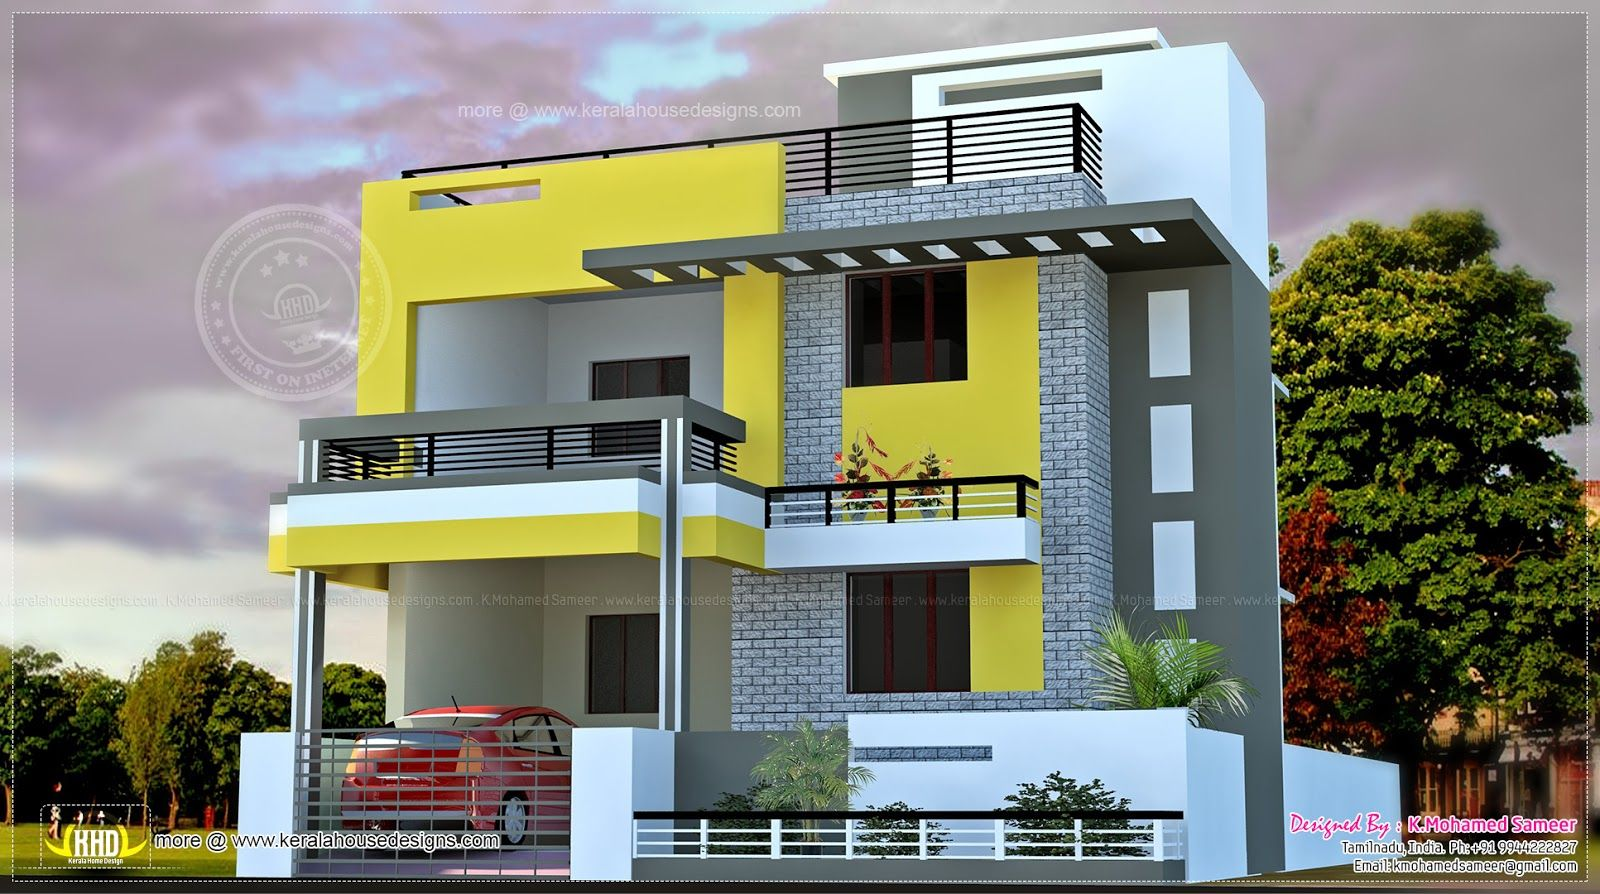 Elevations of residential buildings in indian photo for Independent house designs in india